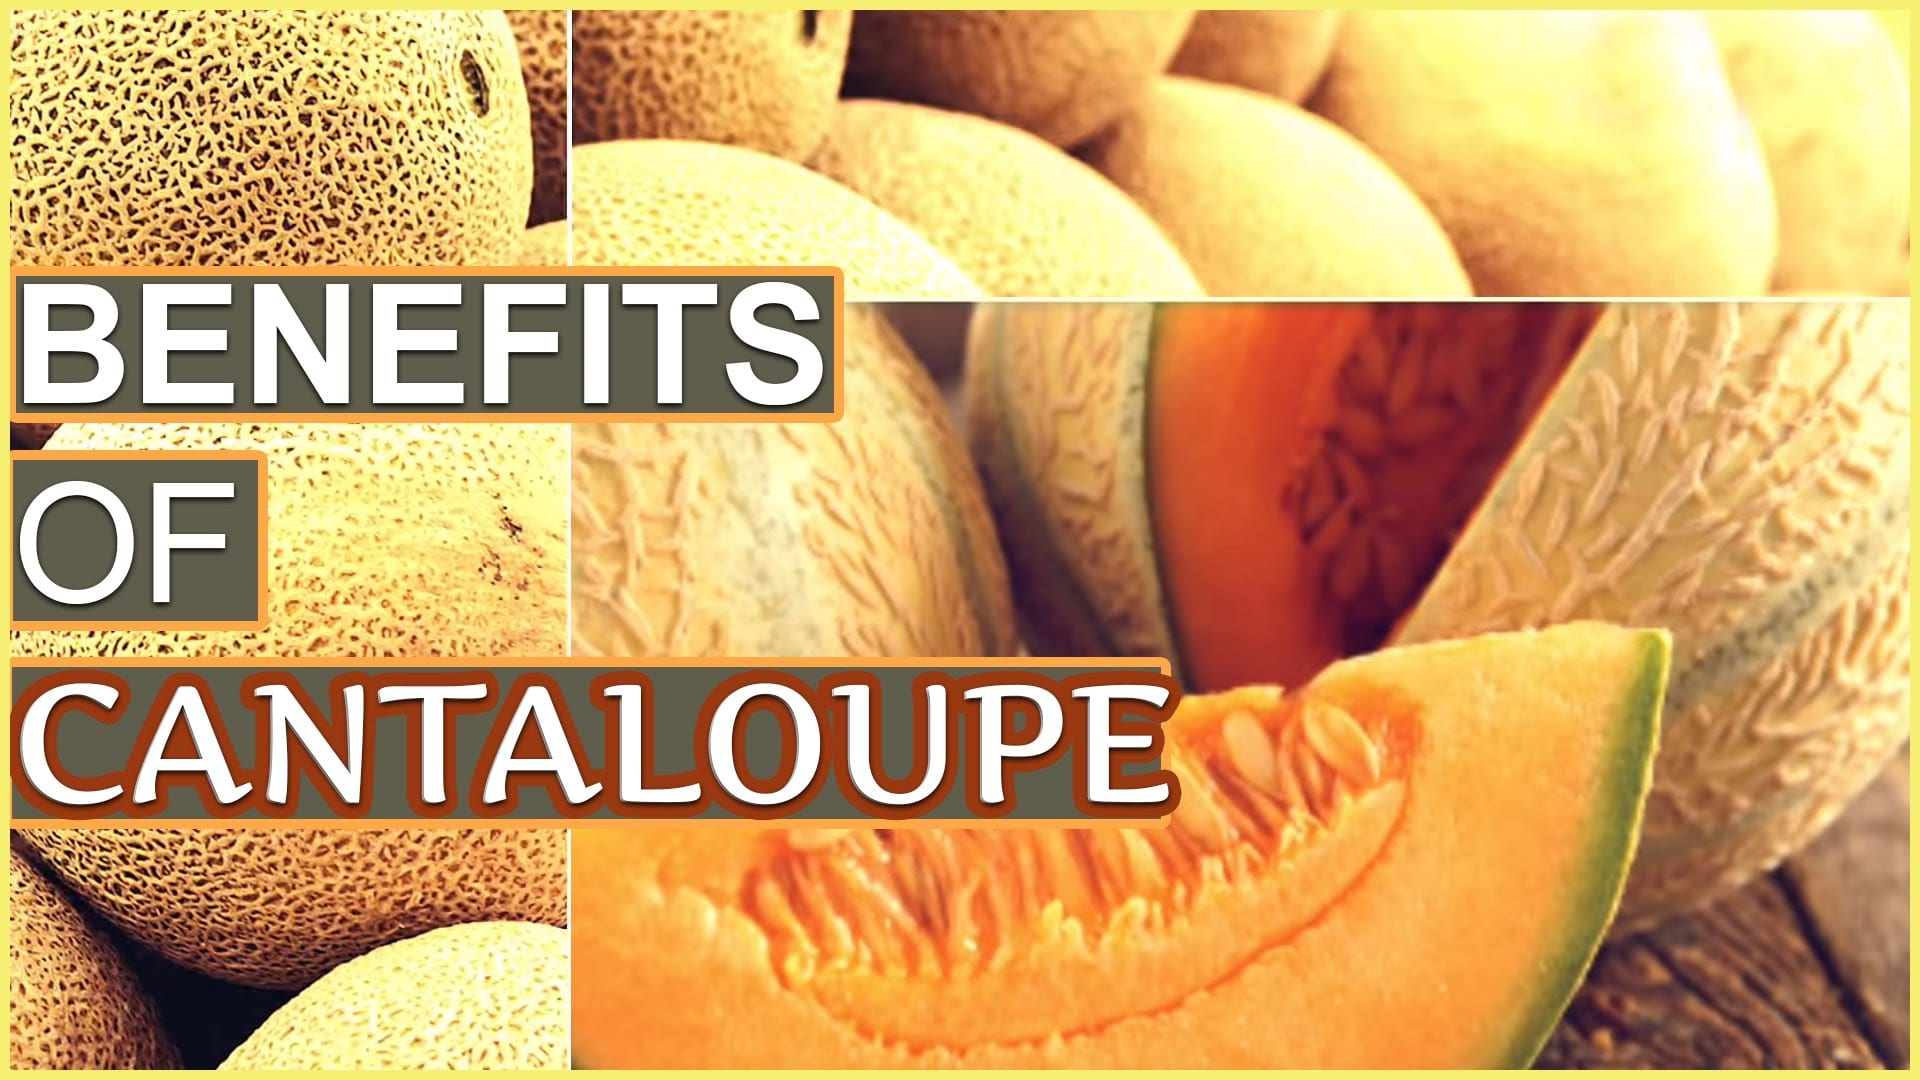 Healthy properties of Cantaloupe